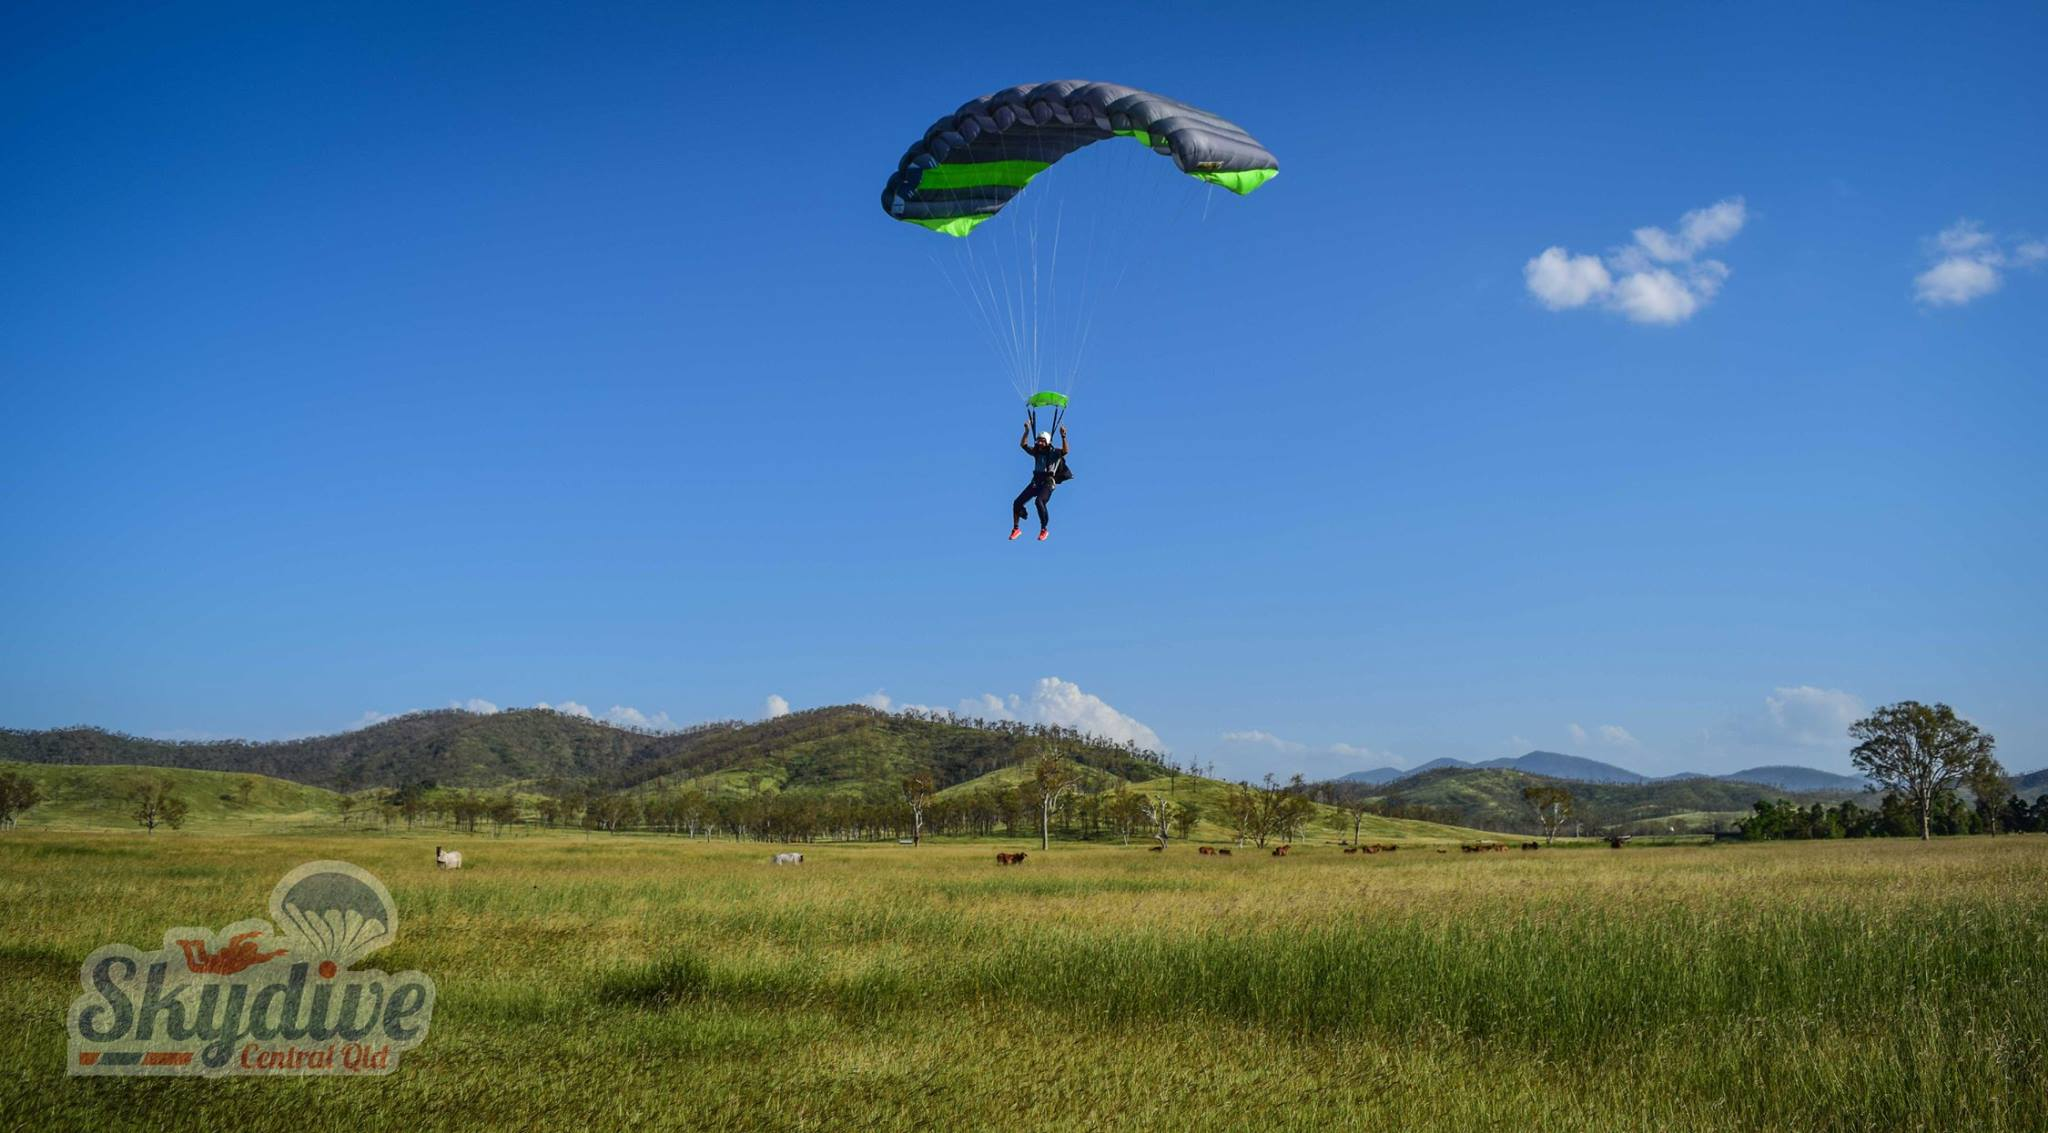 Skydive Central QLD